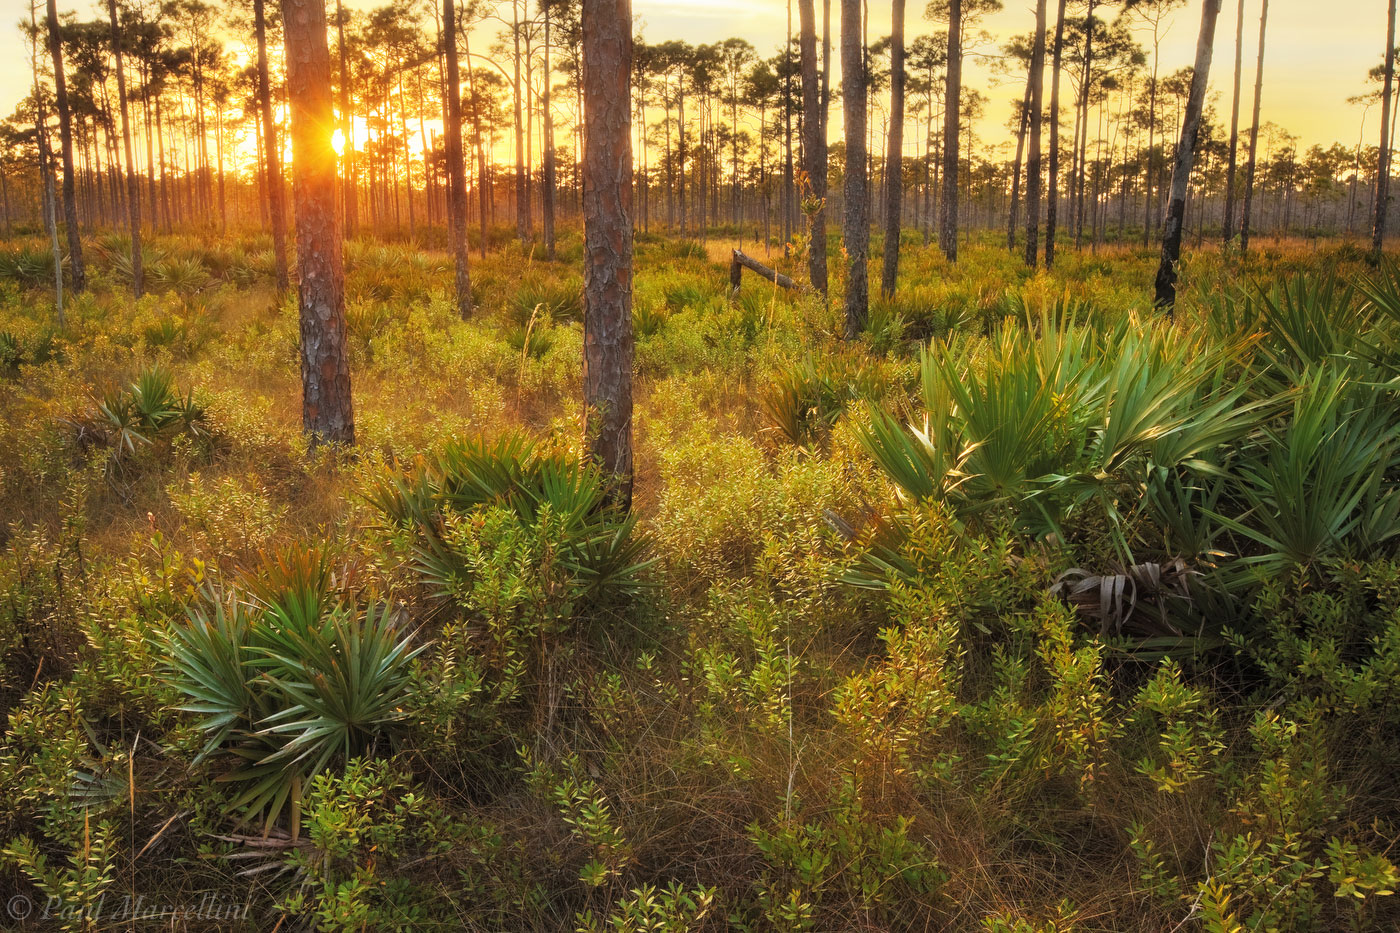 pine flatwoods, jonathan dickinson, central florida, sunset, florida, south florida, nature, photography, photo